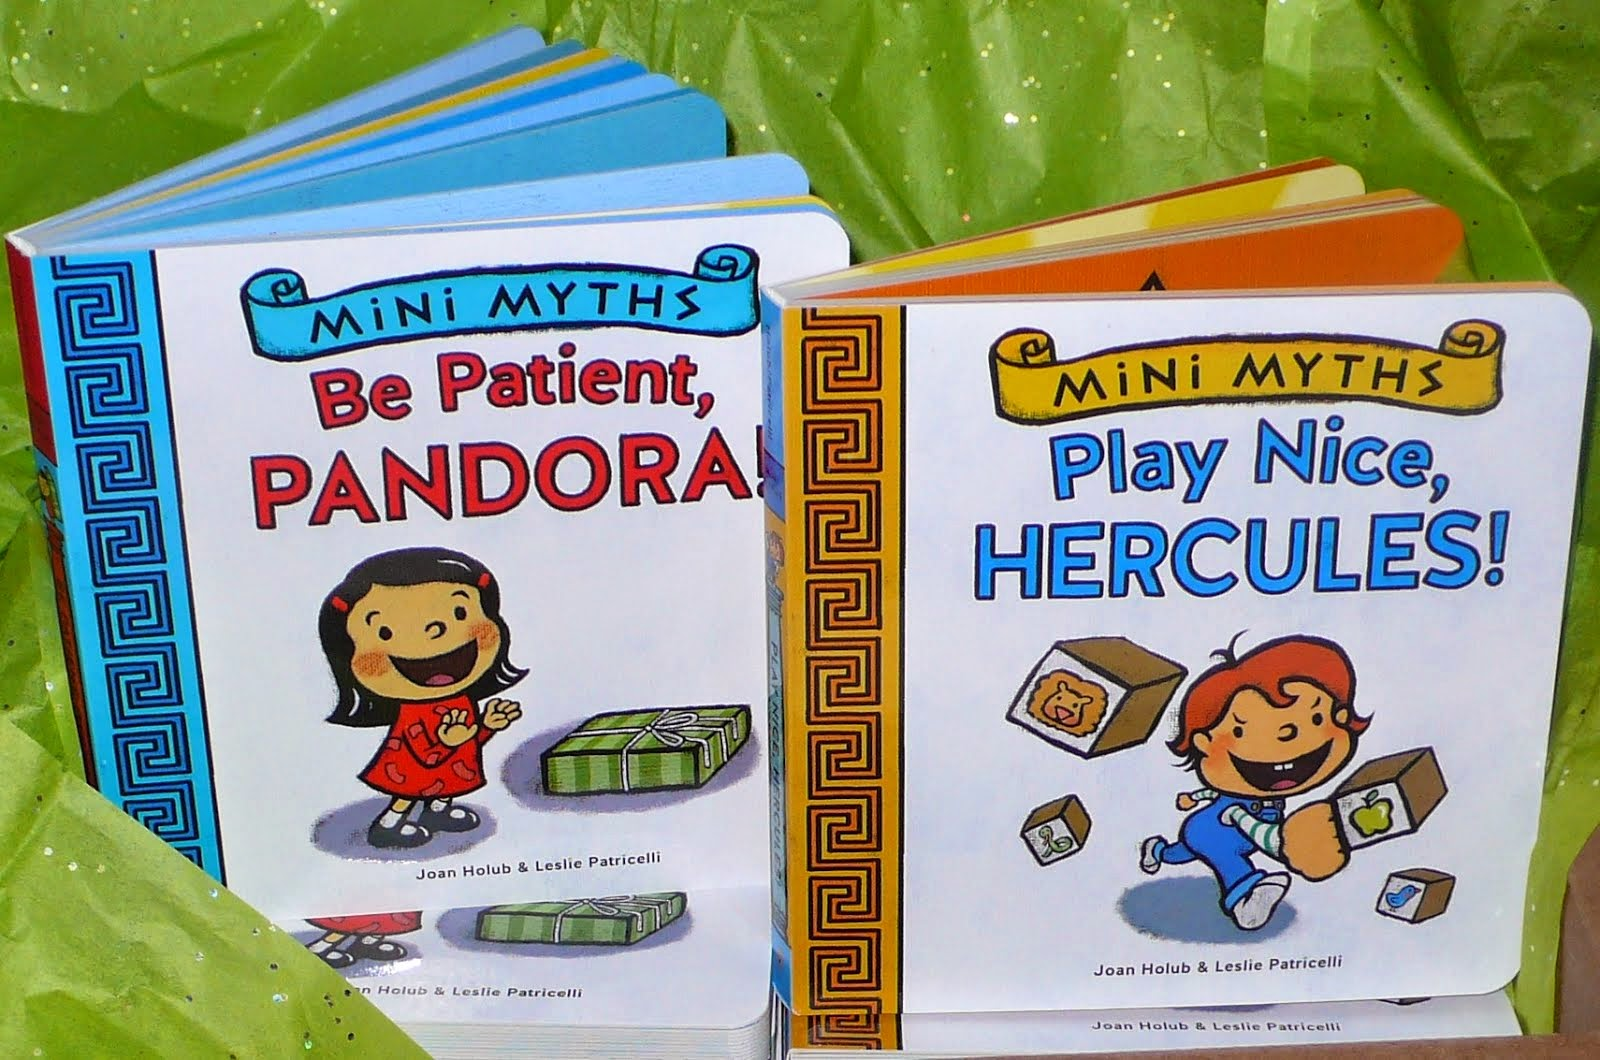 Mini Myths! board books